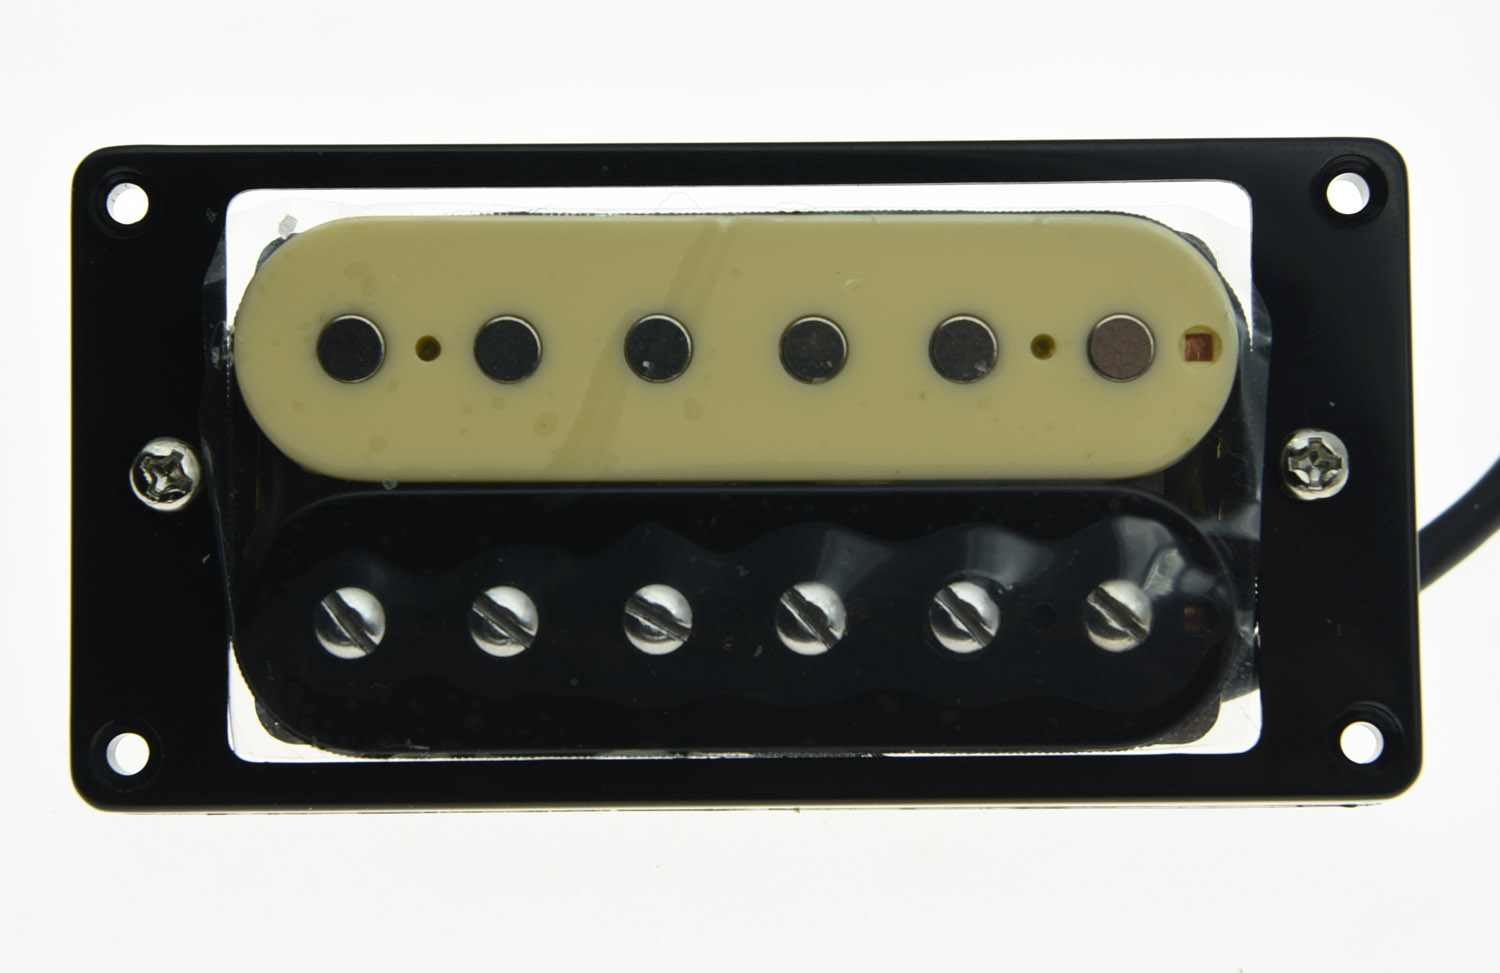 Alnico V Guitar Humbucker Bridge Pickup 50's Vintage Sound Pickups Zebra Style belcat bass pickup 5 string humbucker double coil pickup guitar parts accessories black